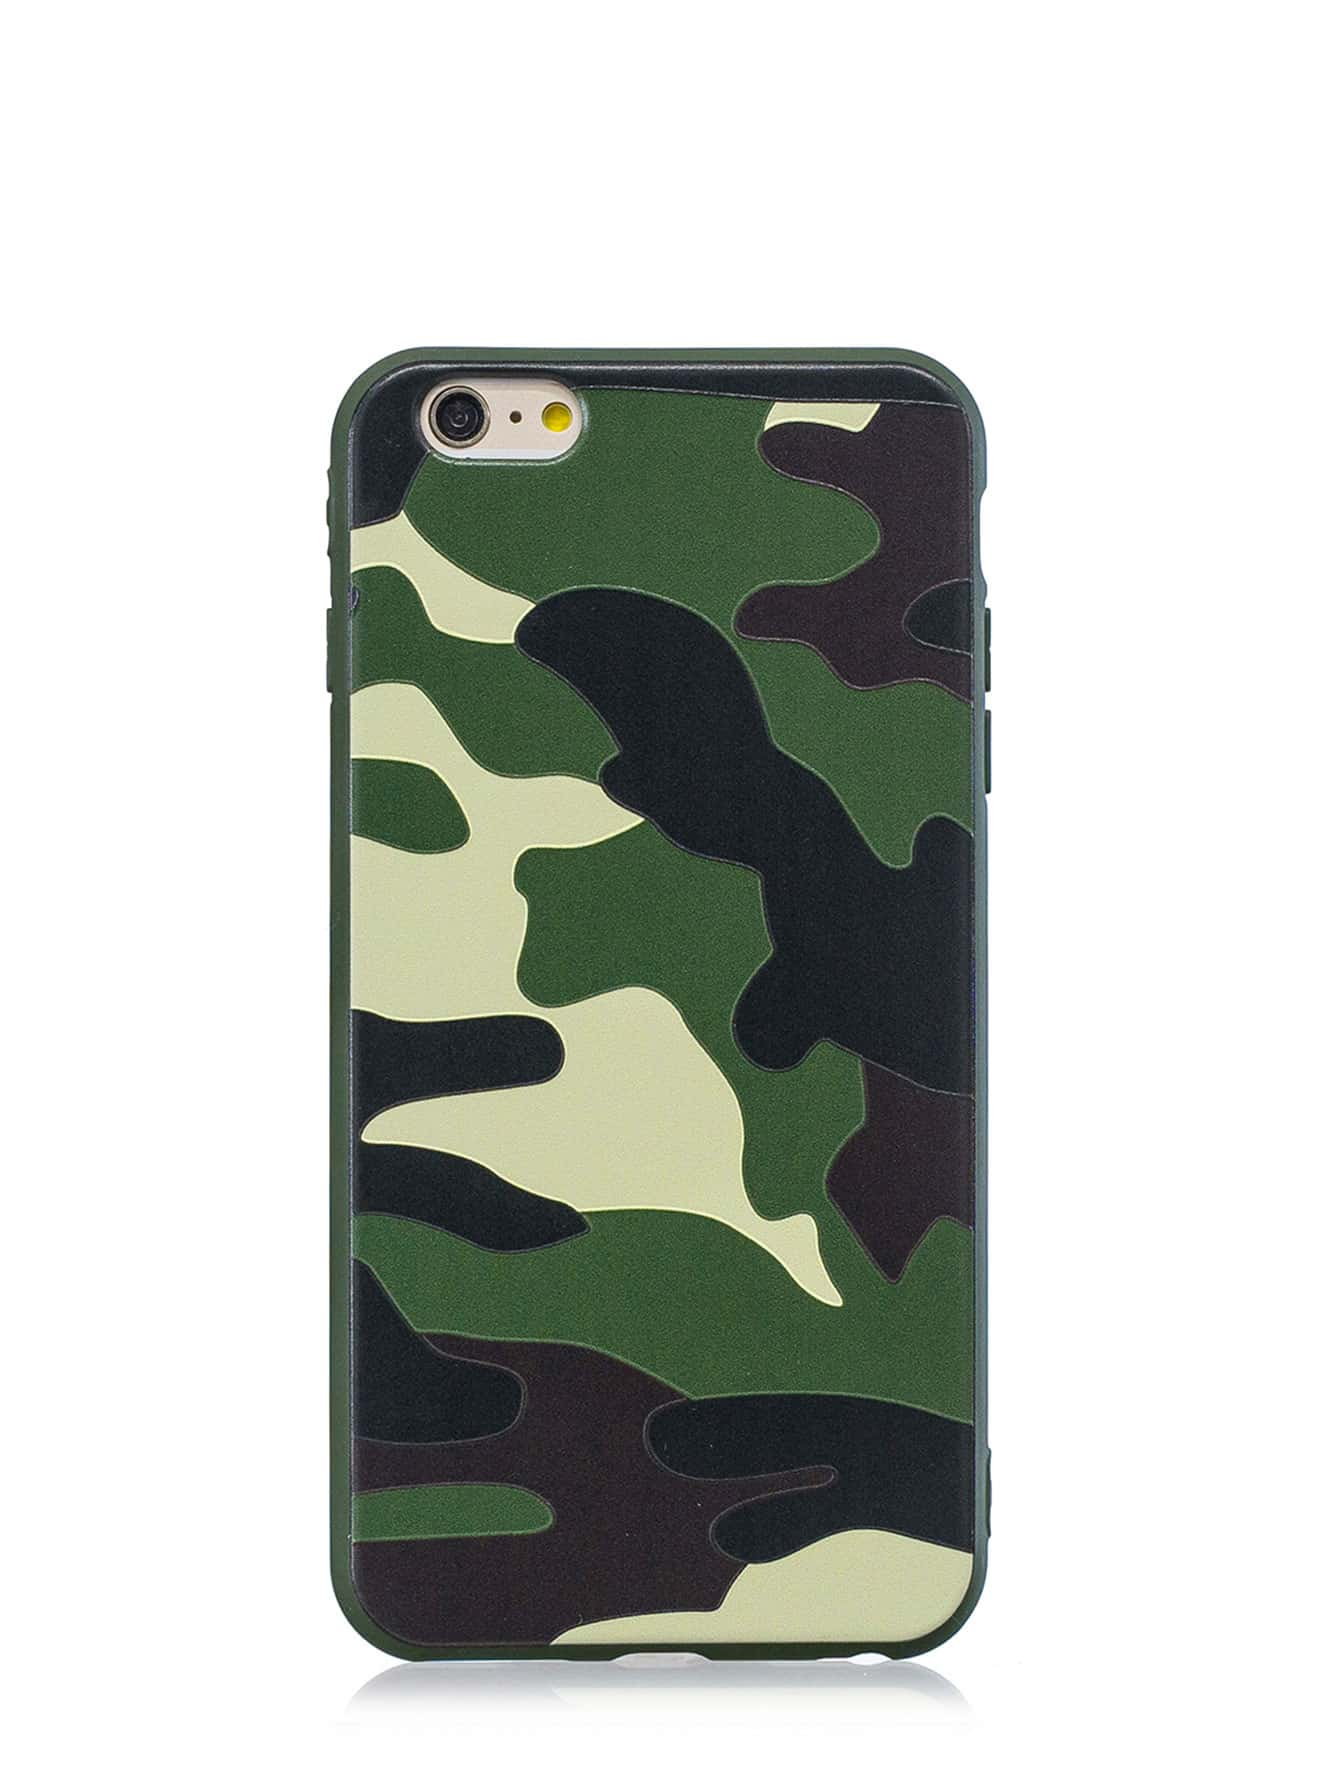 Camouflage Print iPhone Case